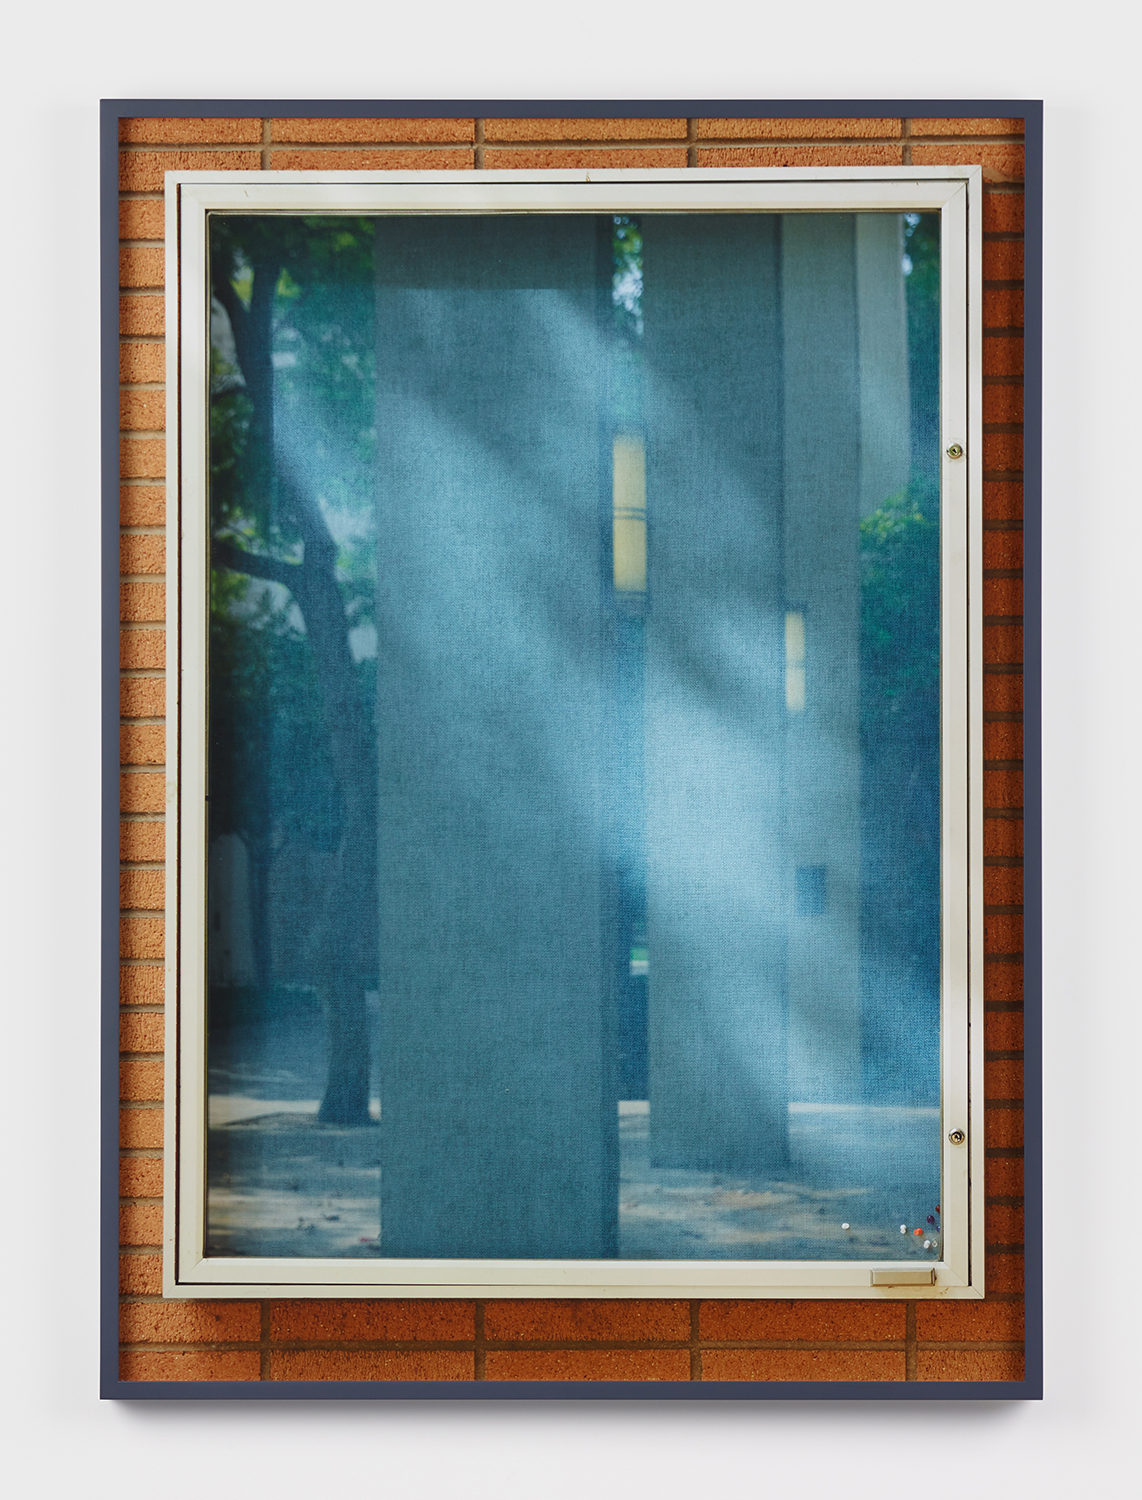 Jennifer Bolande, Bulletin Board (L) at 2:20pm, 2017, Archival Pigment Print, 36.75h x 26.50w x 1.50d in.